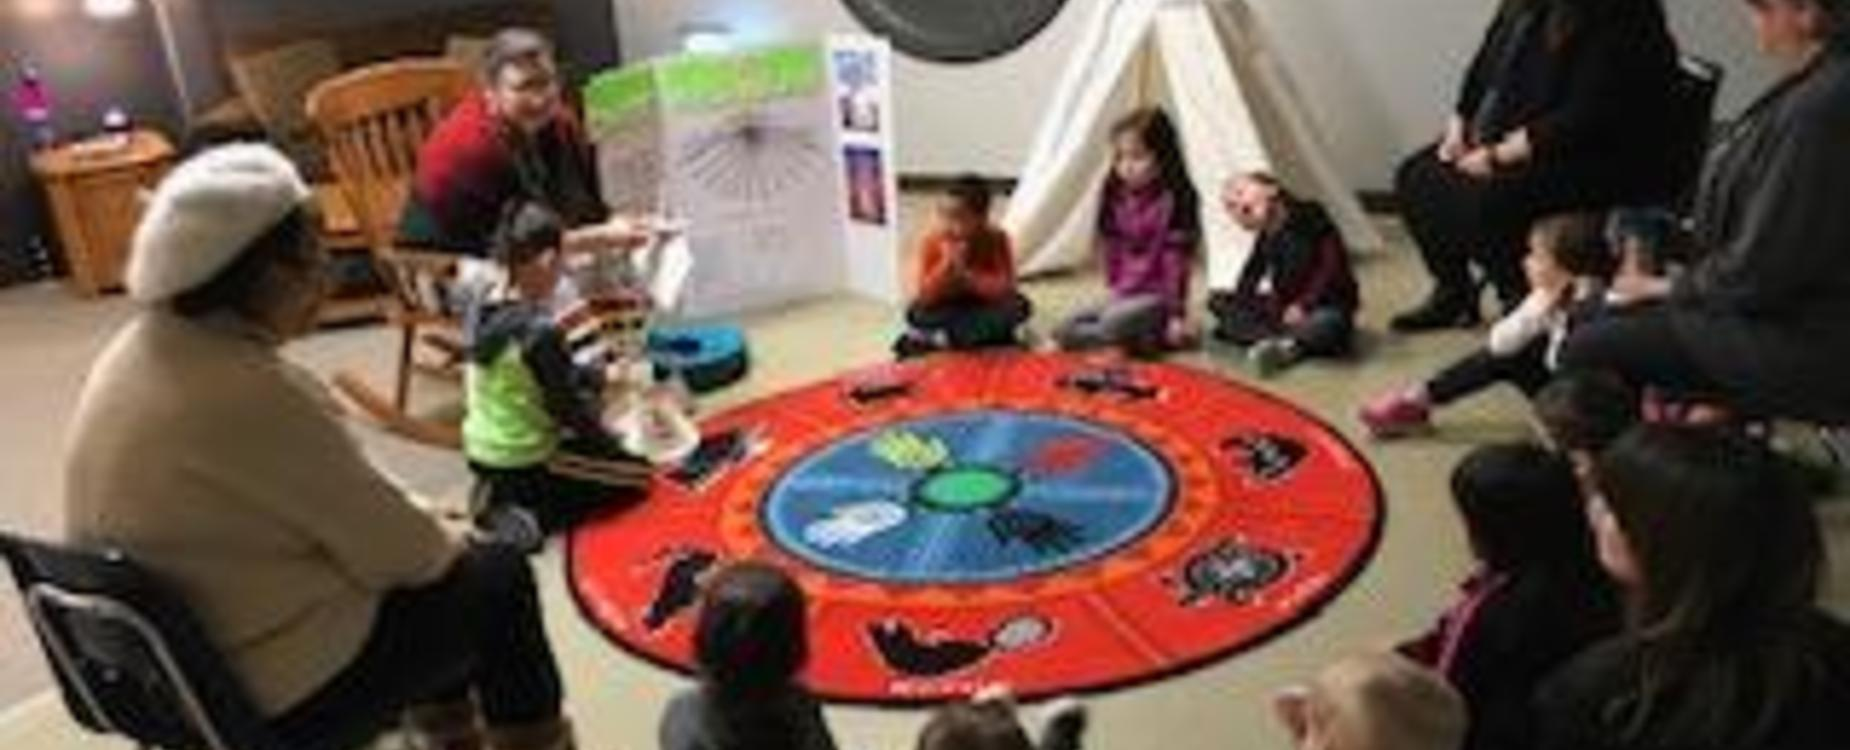 children in a circle around carpet